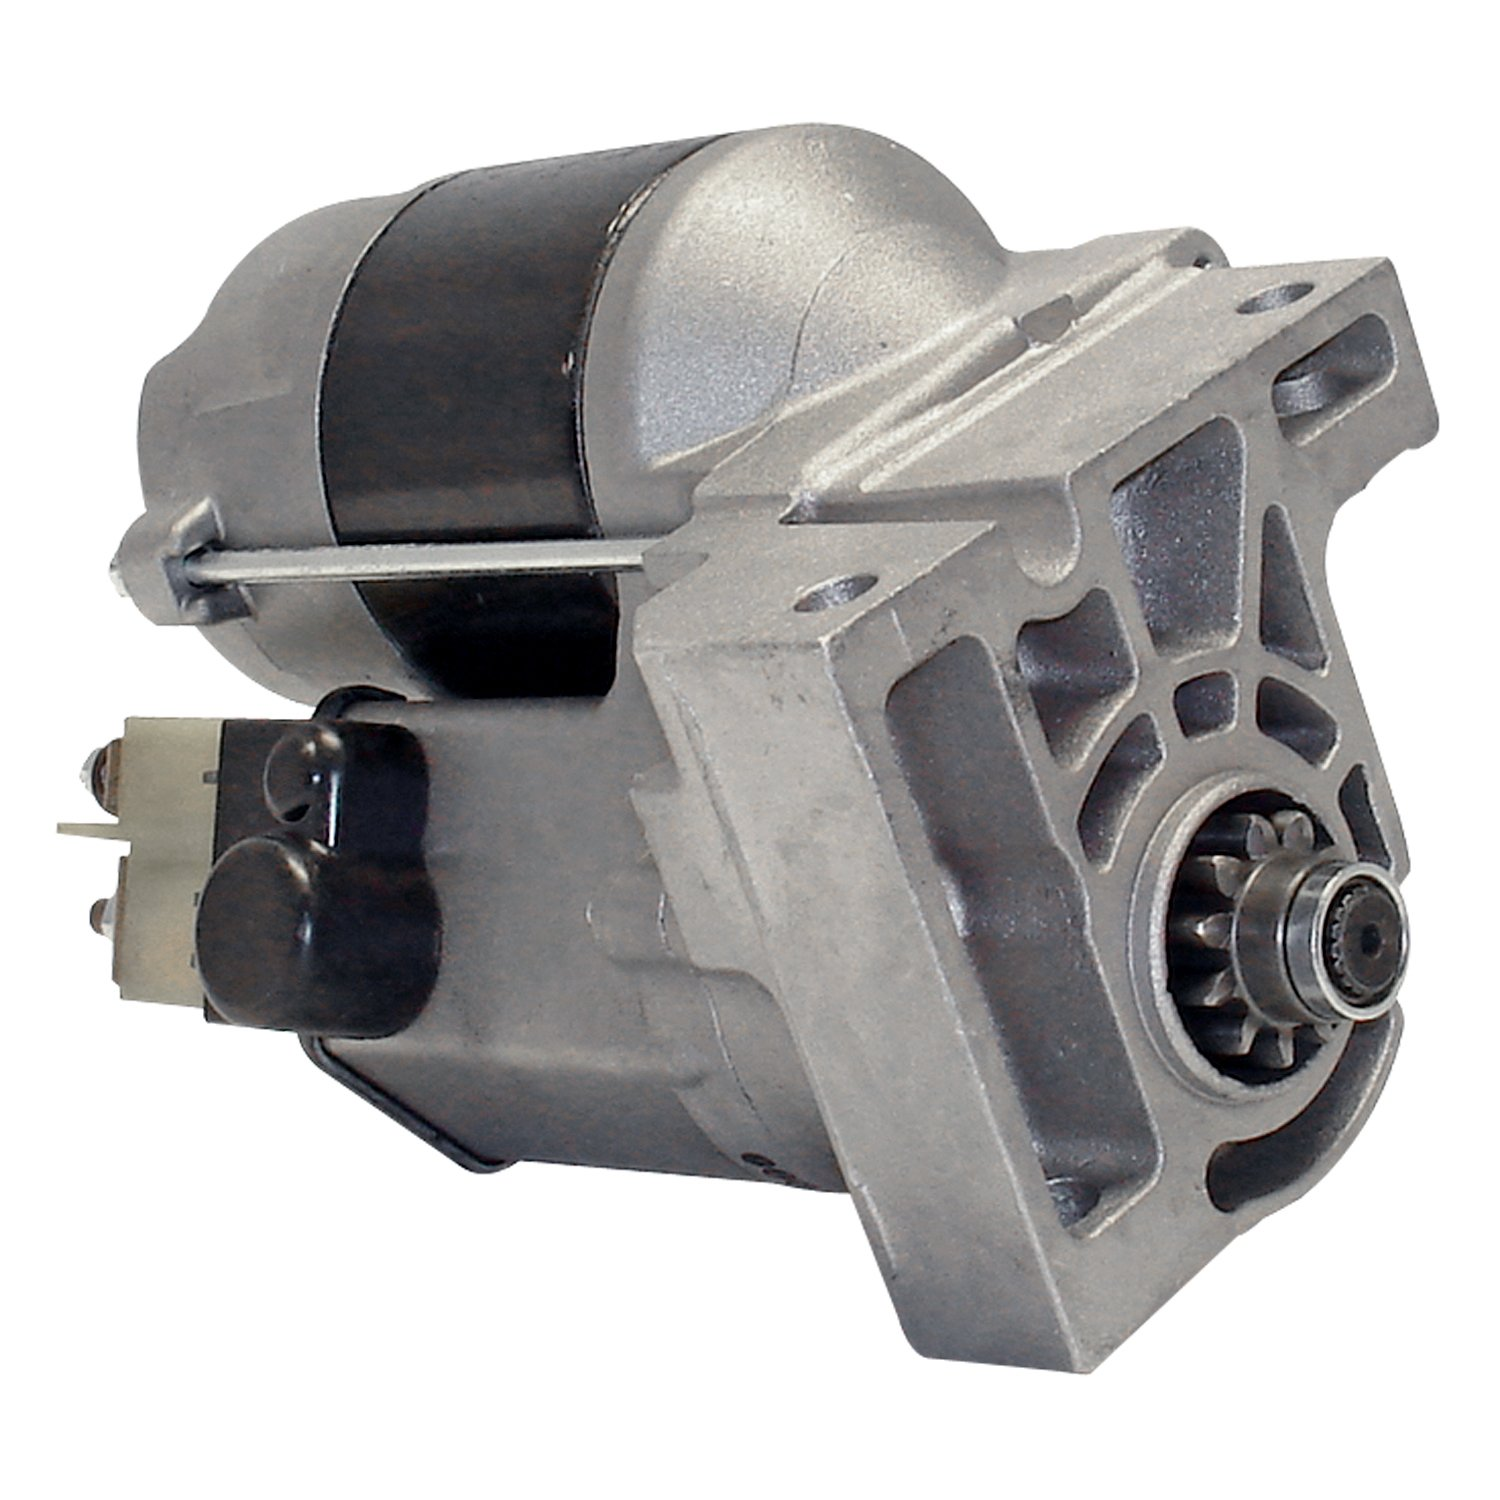 ACDelco 336-1148 Professional Starter, Remanufactured by ACDelco